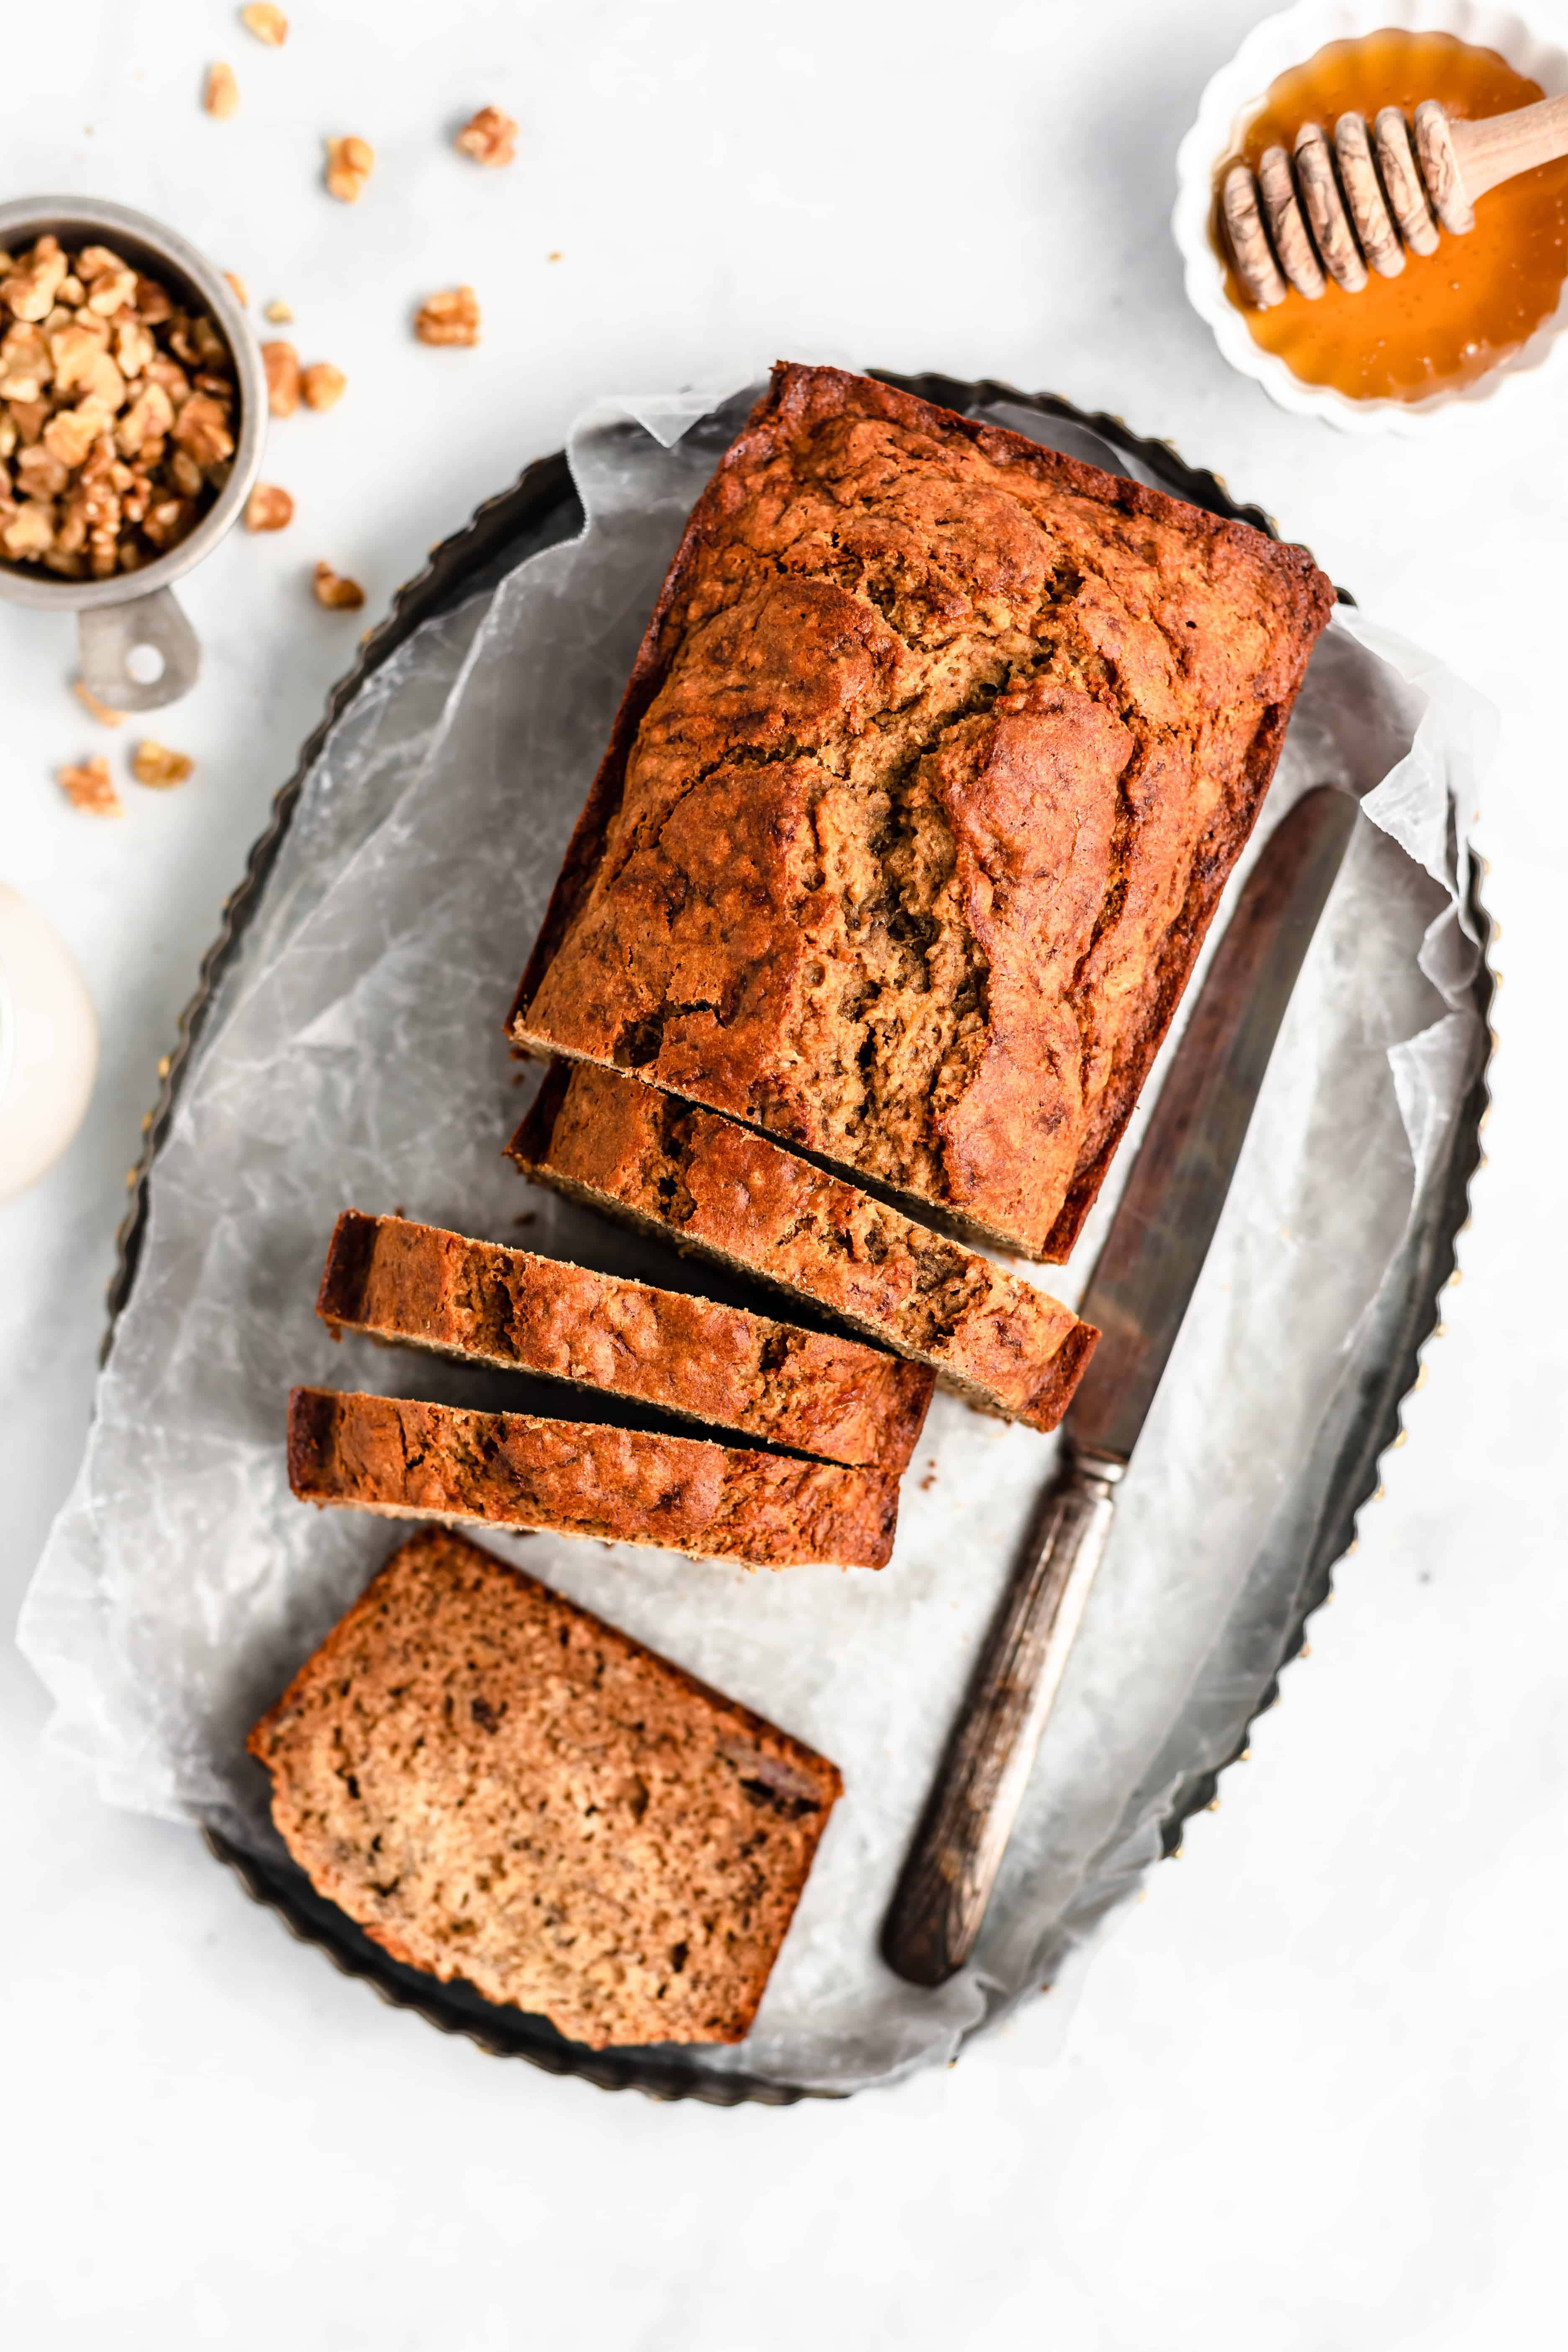 Moist and lightly sweetened Healthy Banana Bread – made with bananas, coconut oil, cinnamon, and whole wheat flour.